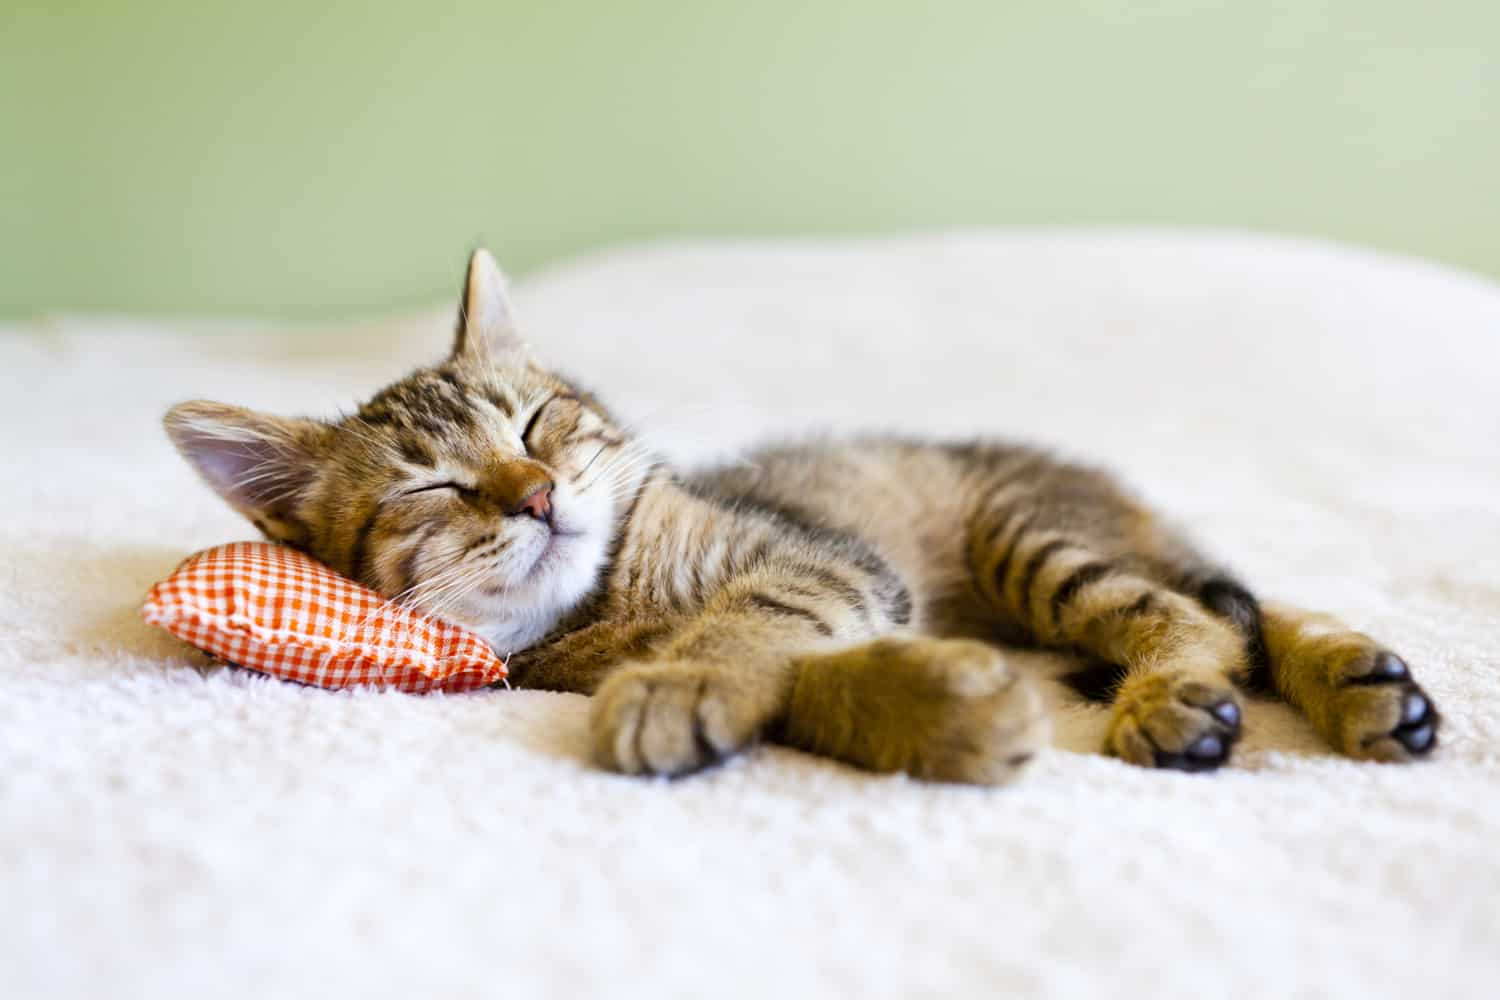 Small kitty sleeping on a pillow